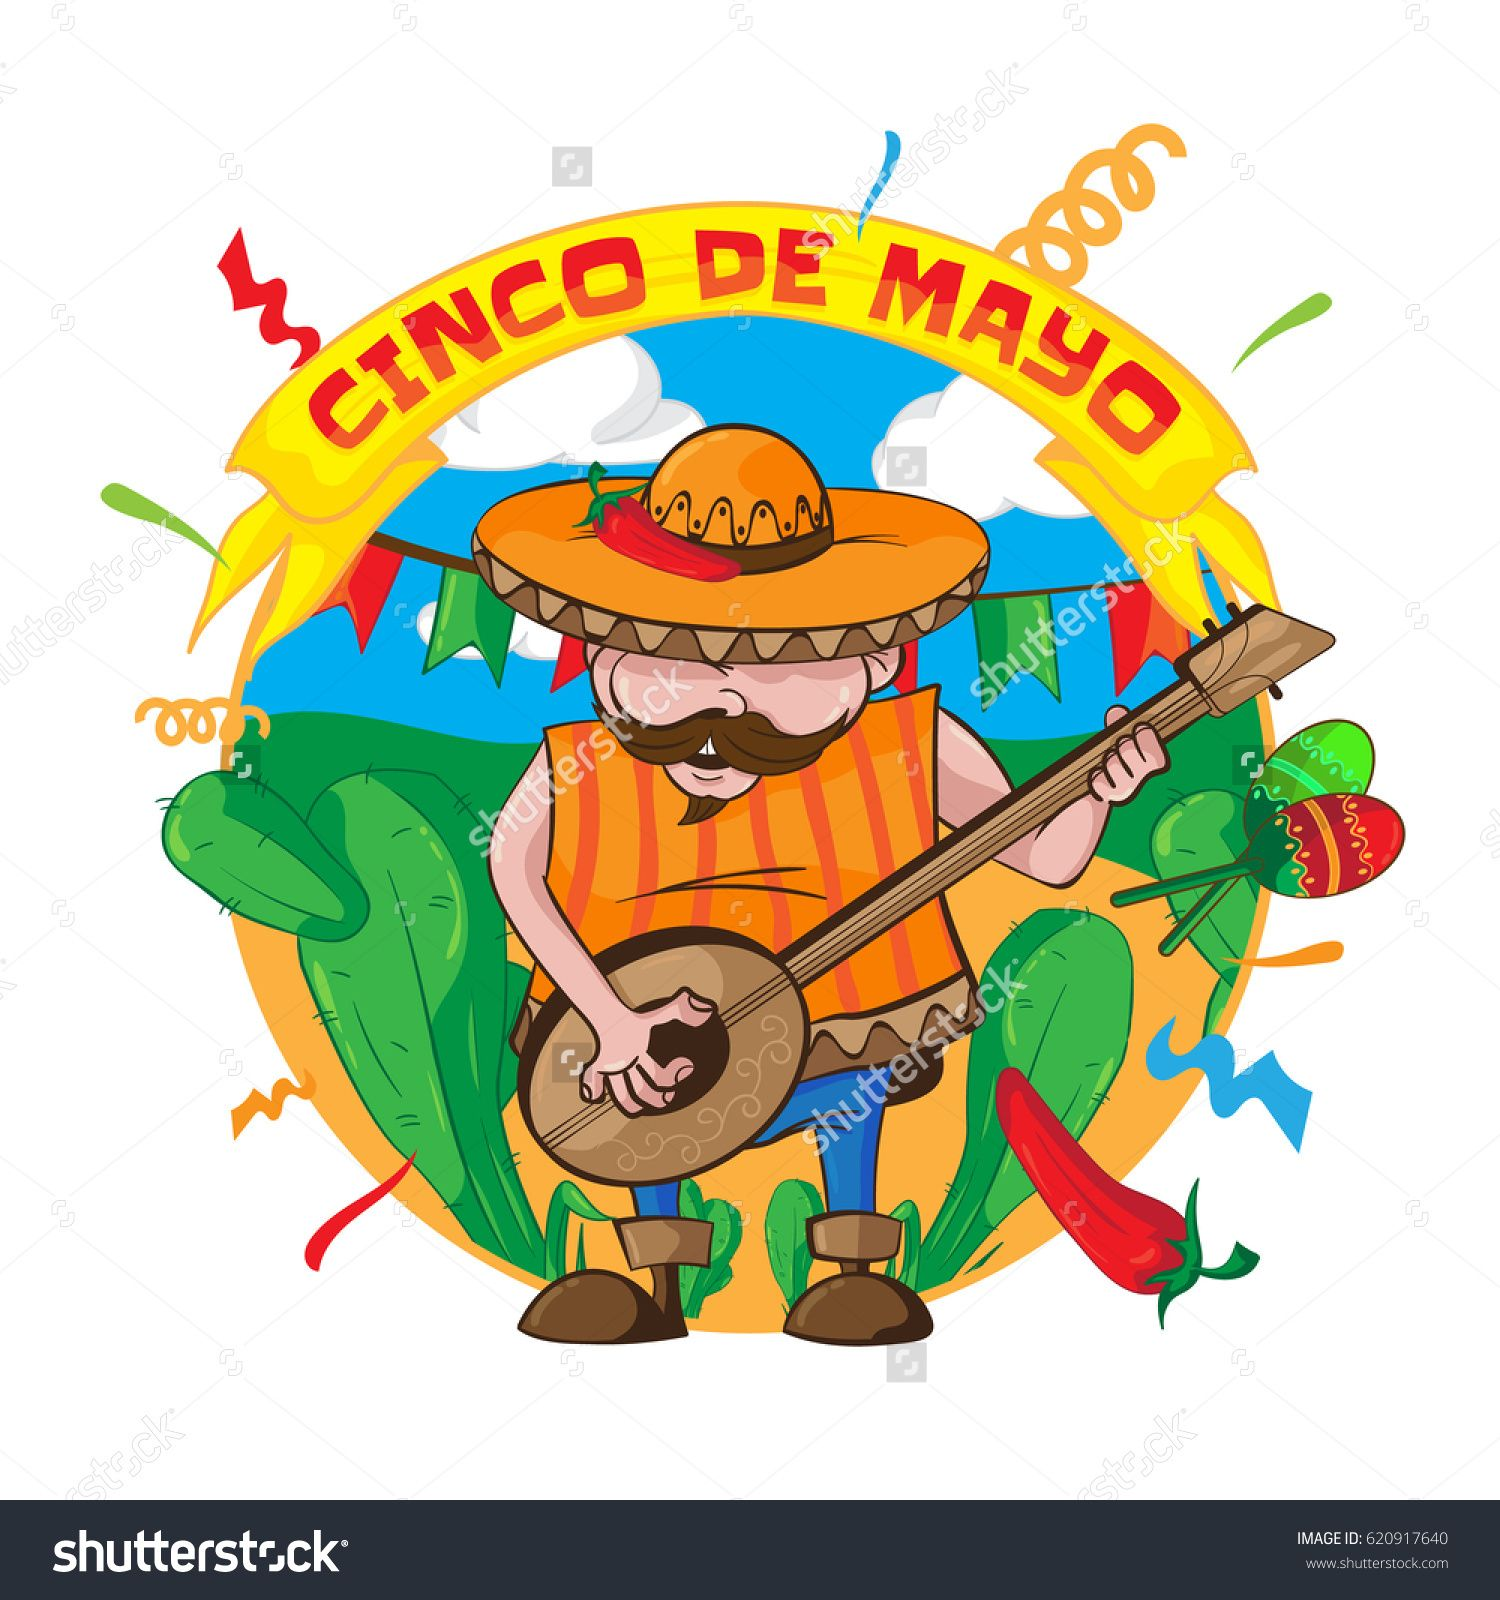 Happy cinco de mayo greeting card with an mexican man in sombrero happy cinco de mayo greeting card with an mexican man in sombrero playing guitar and maracas m4hsunfo